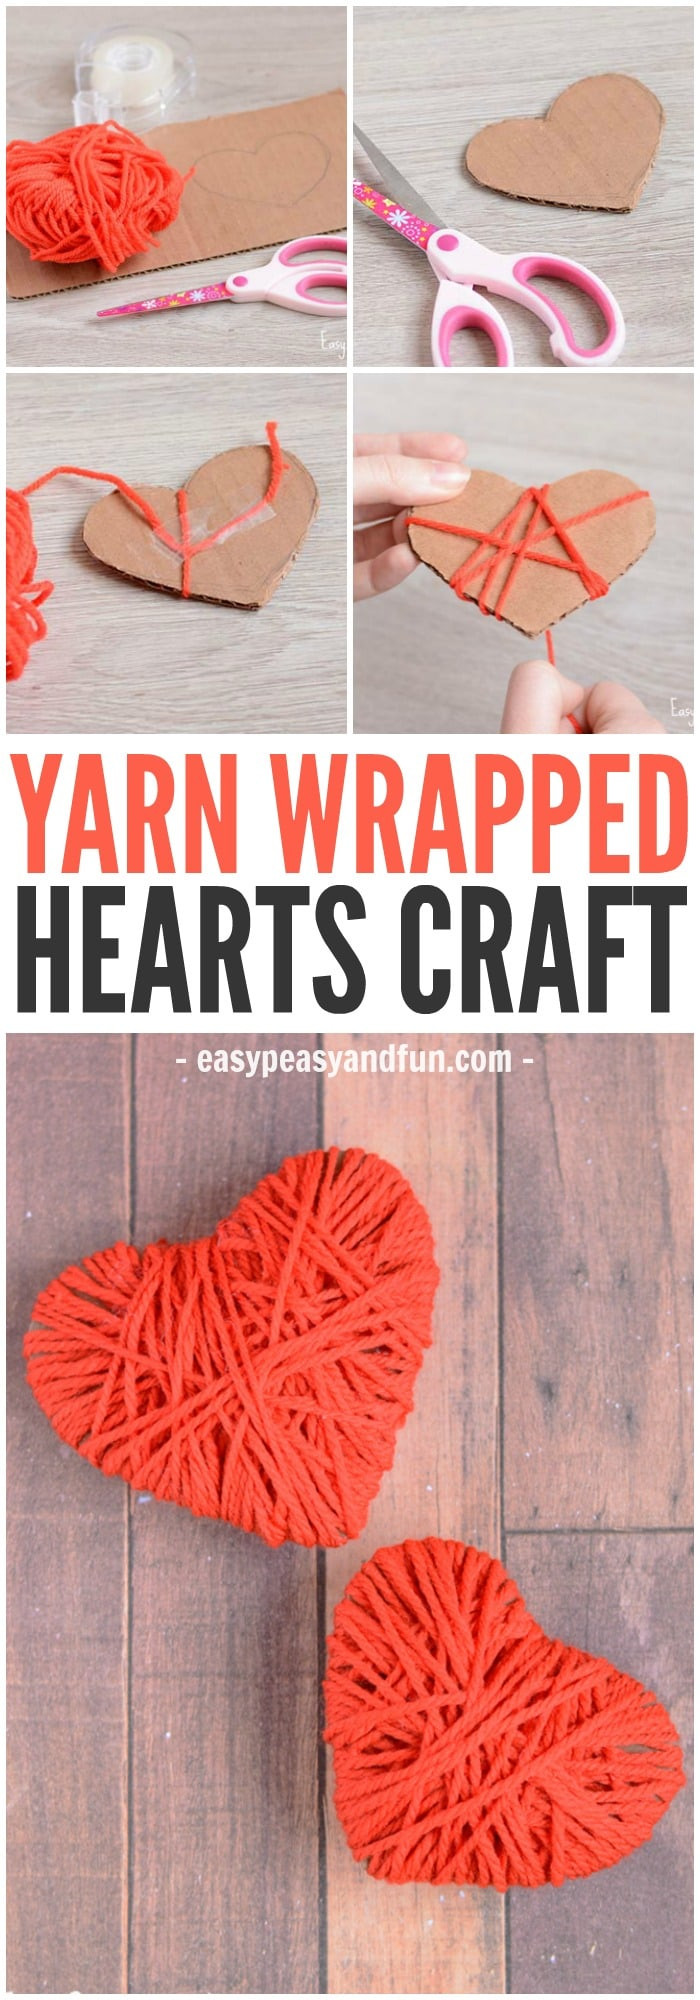 Heart Crafts For Adults  Yarn Wrapped Hearts Craft Valentines Day Crafts Easy